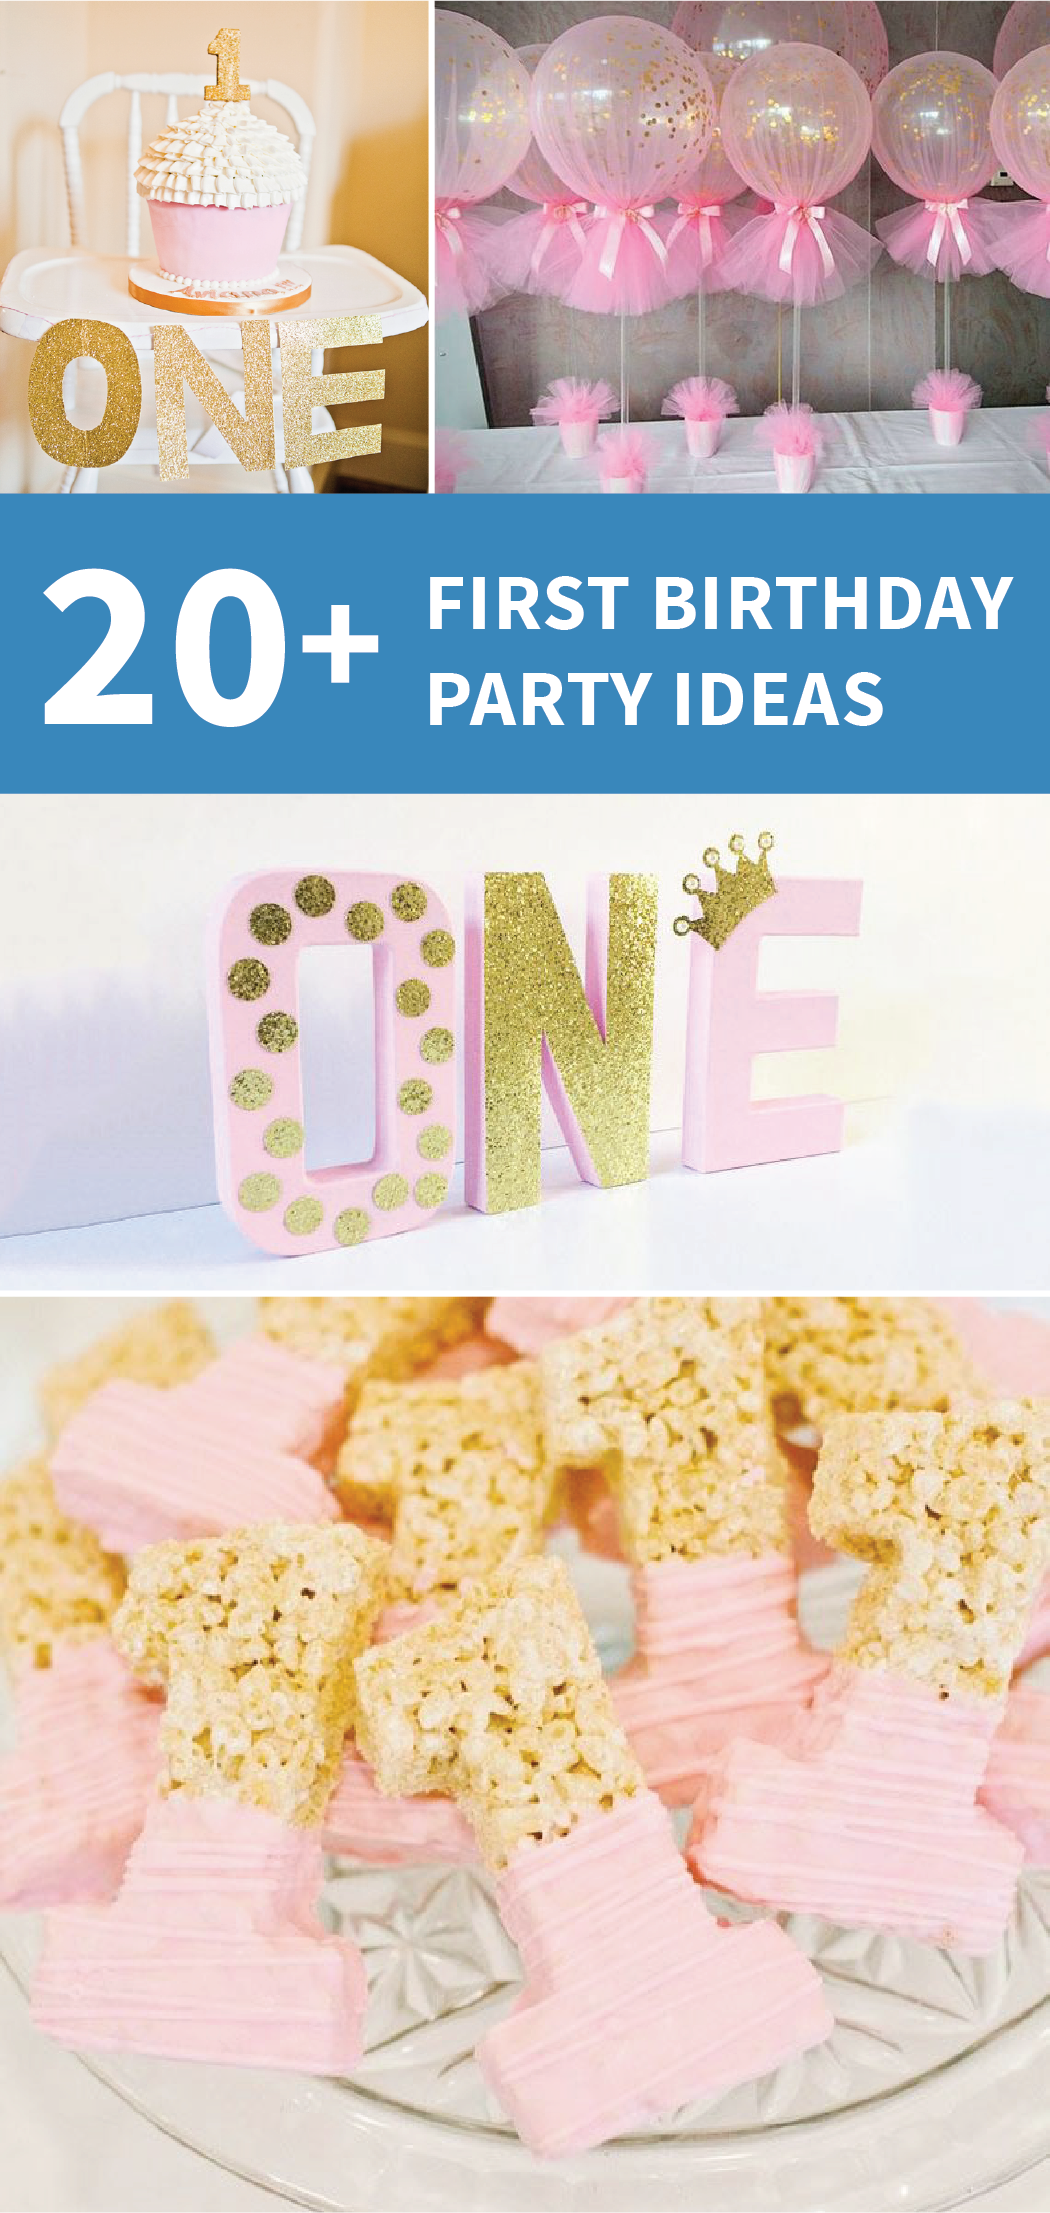 21 Pink and Gold First Birthday Party Ideas Gold decorations Rice